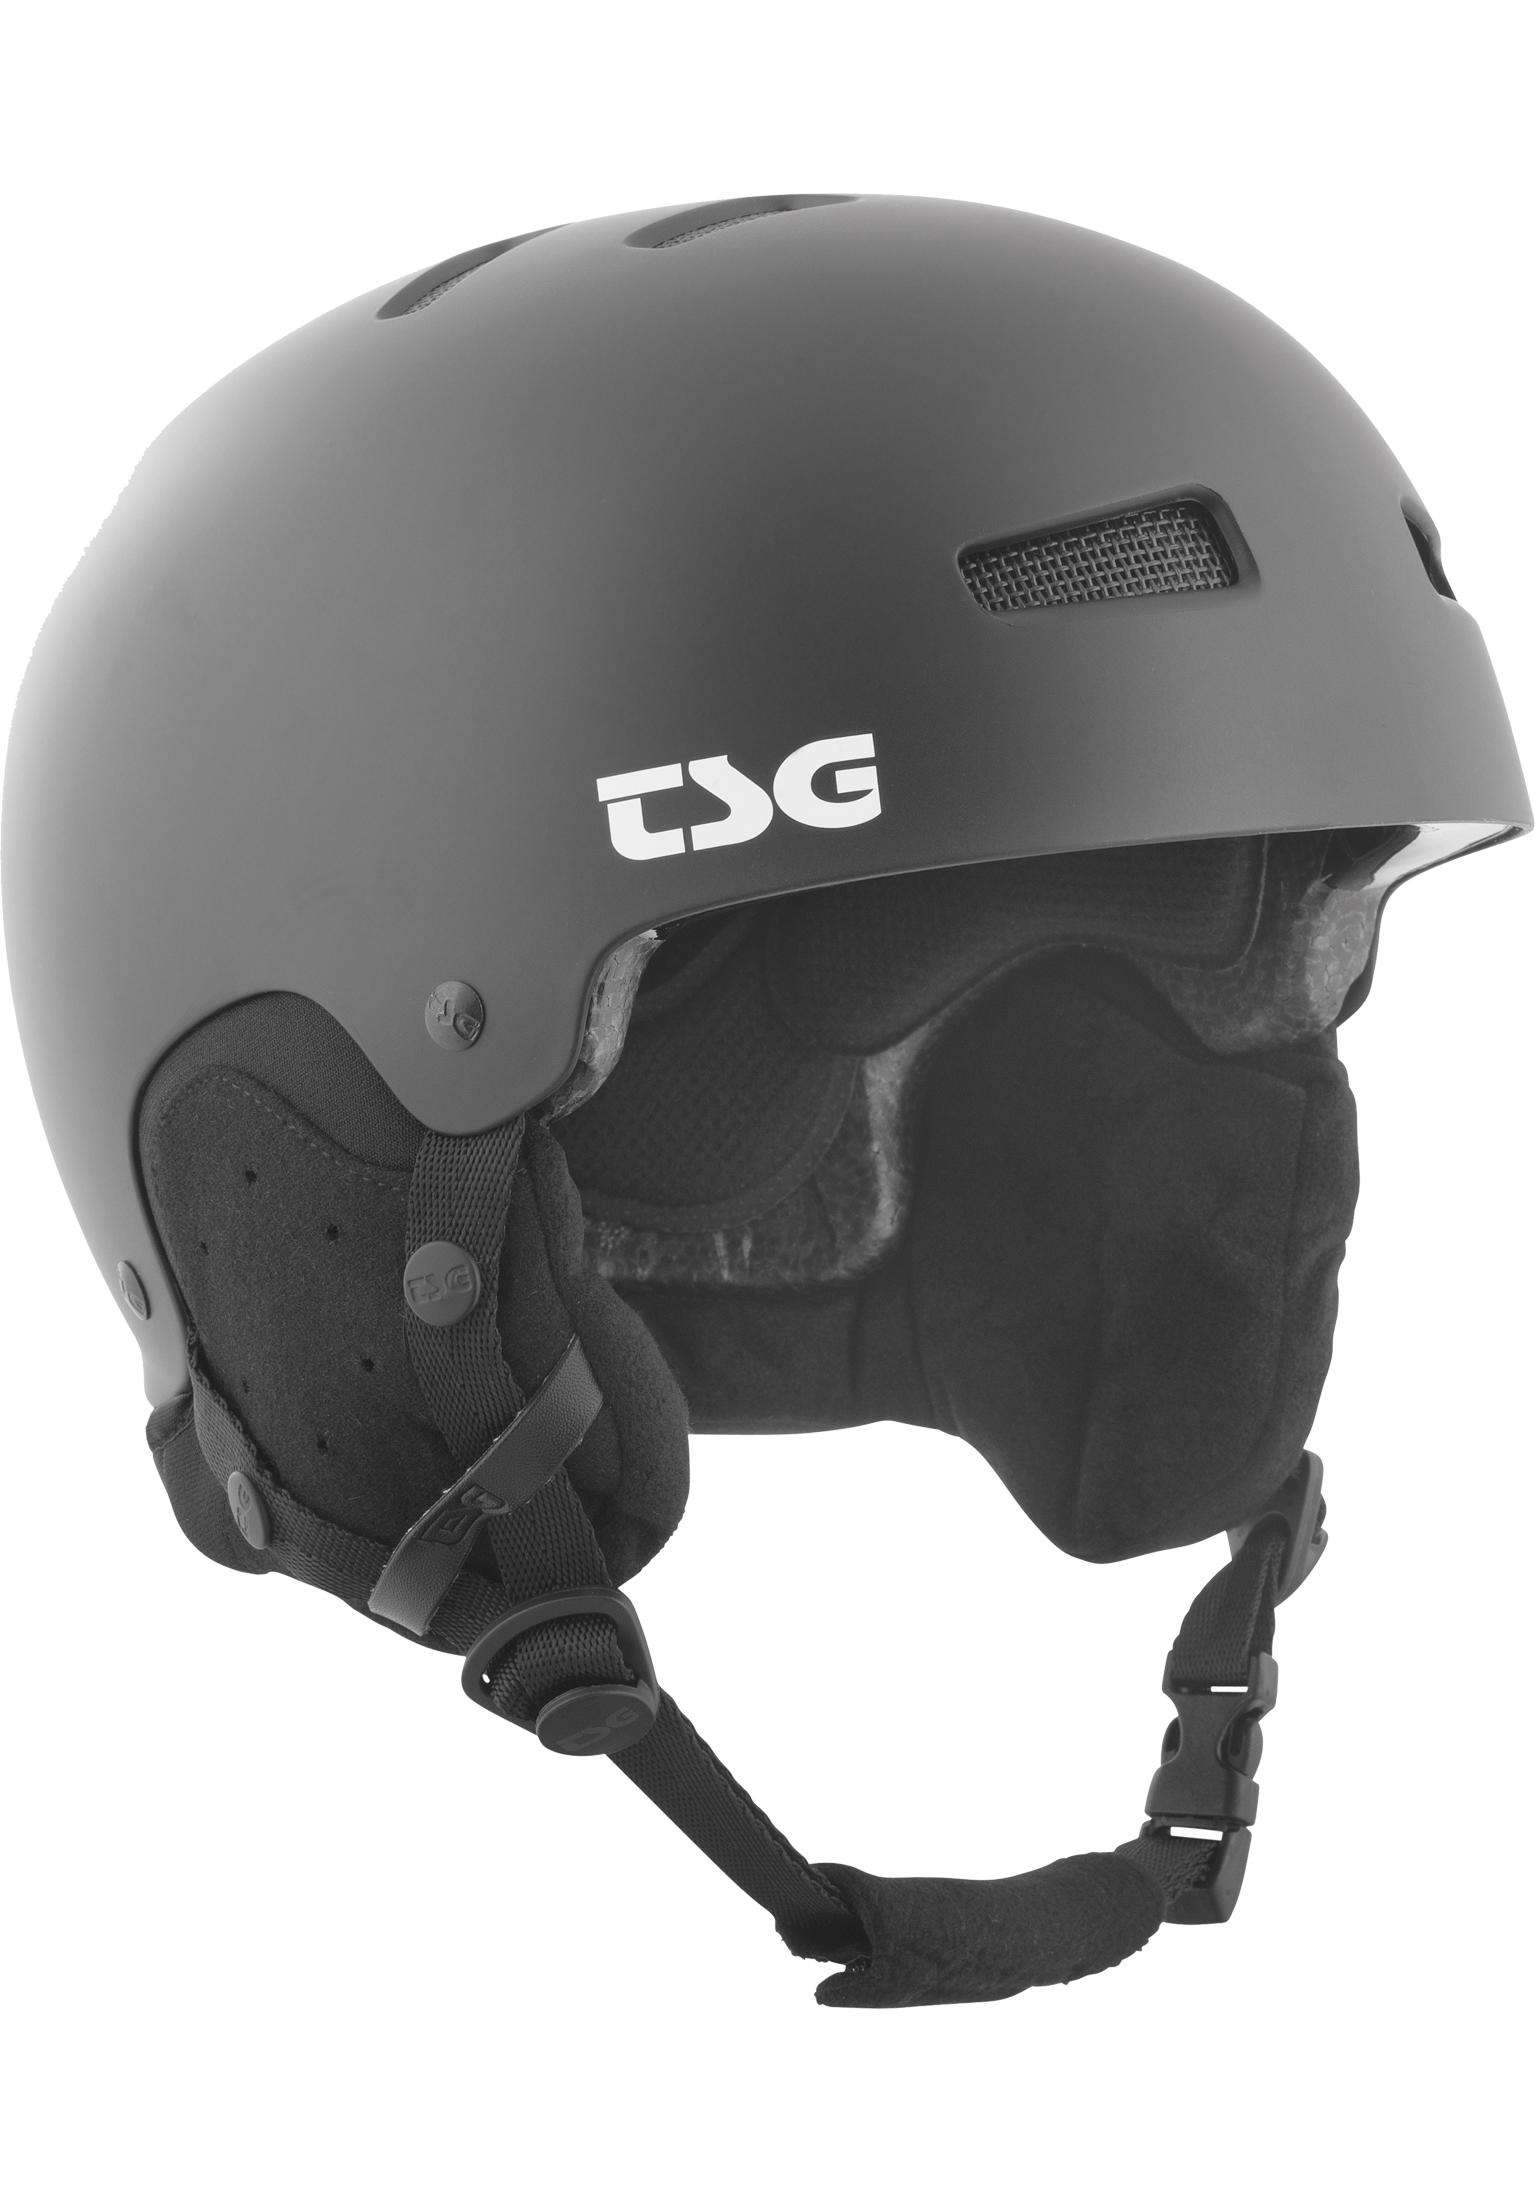 b9d414e9f0 Gravity Solid Color TSG Snowboard Helmets in satin black